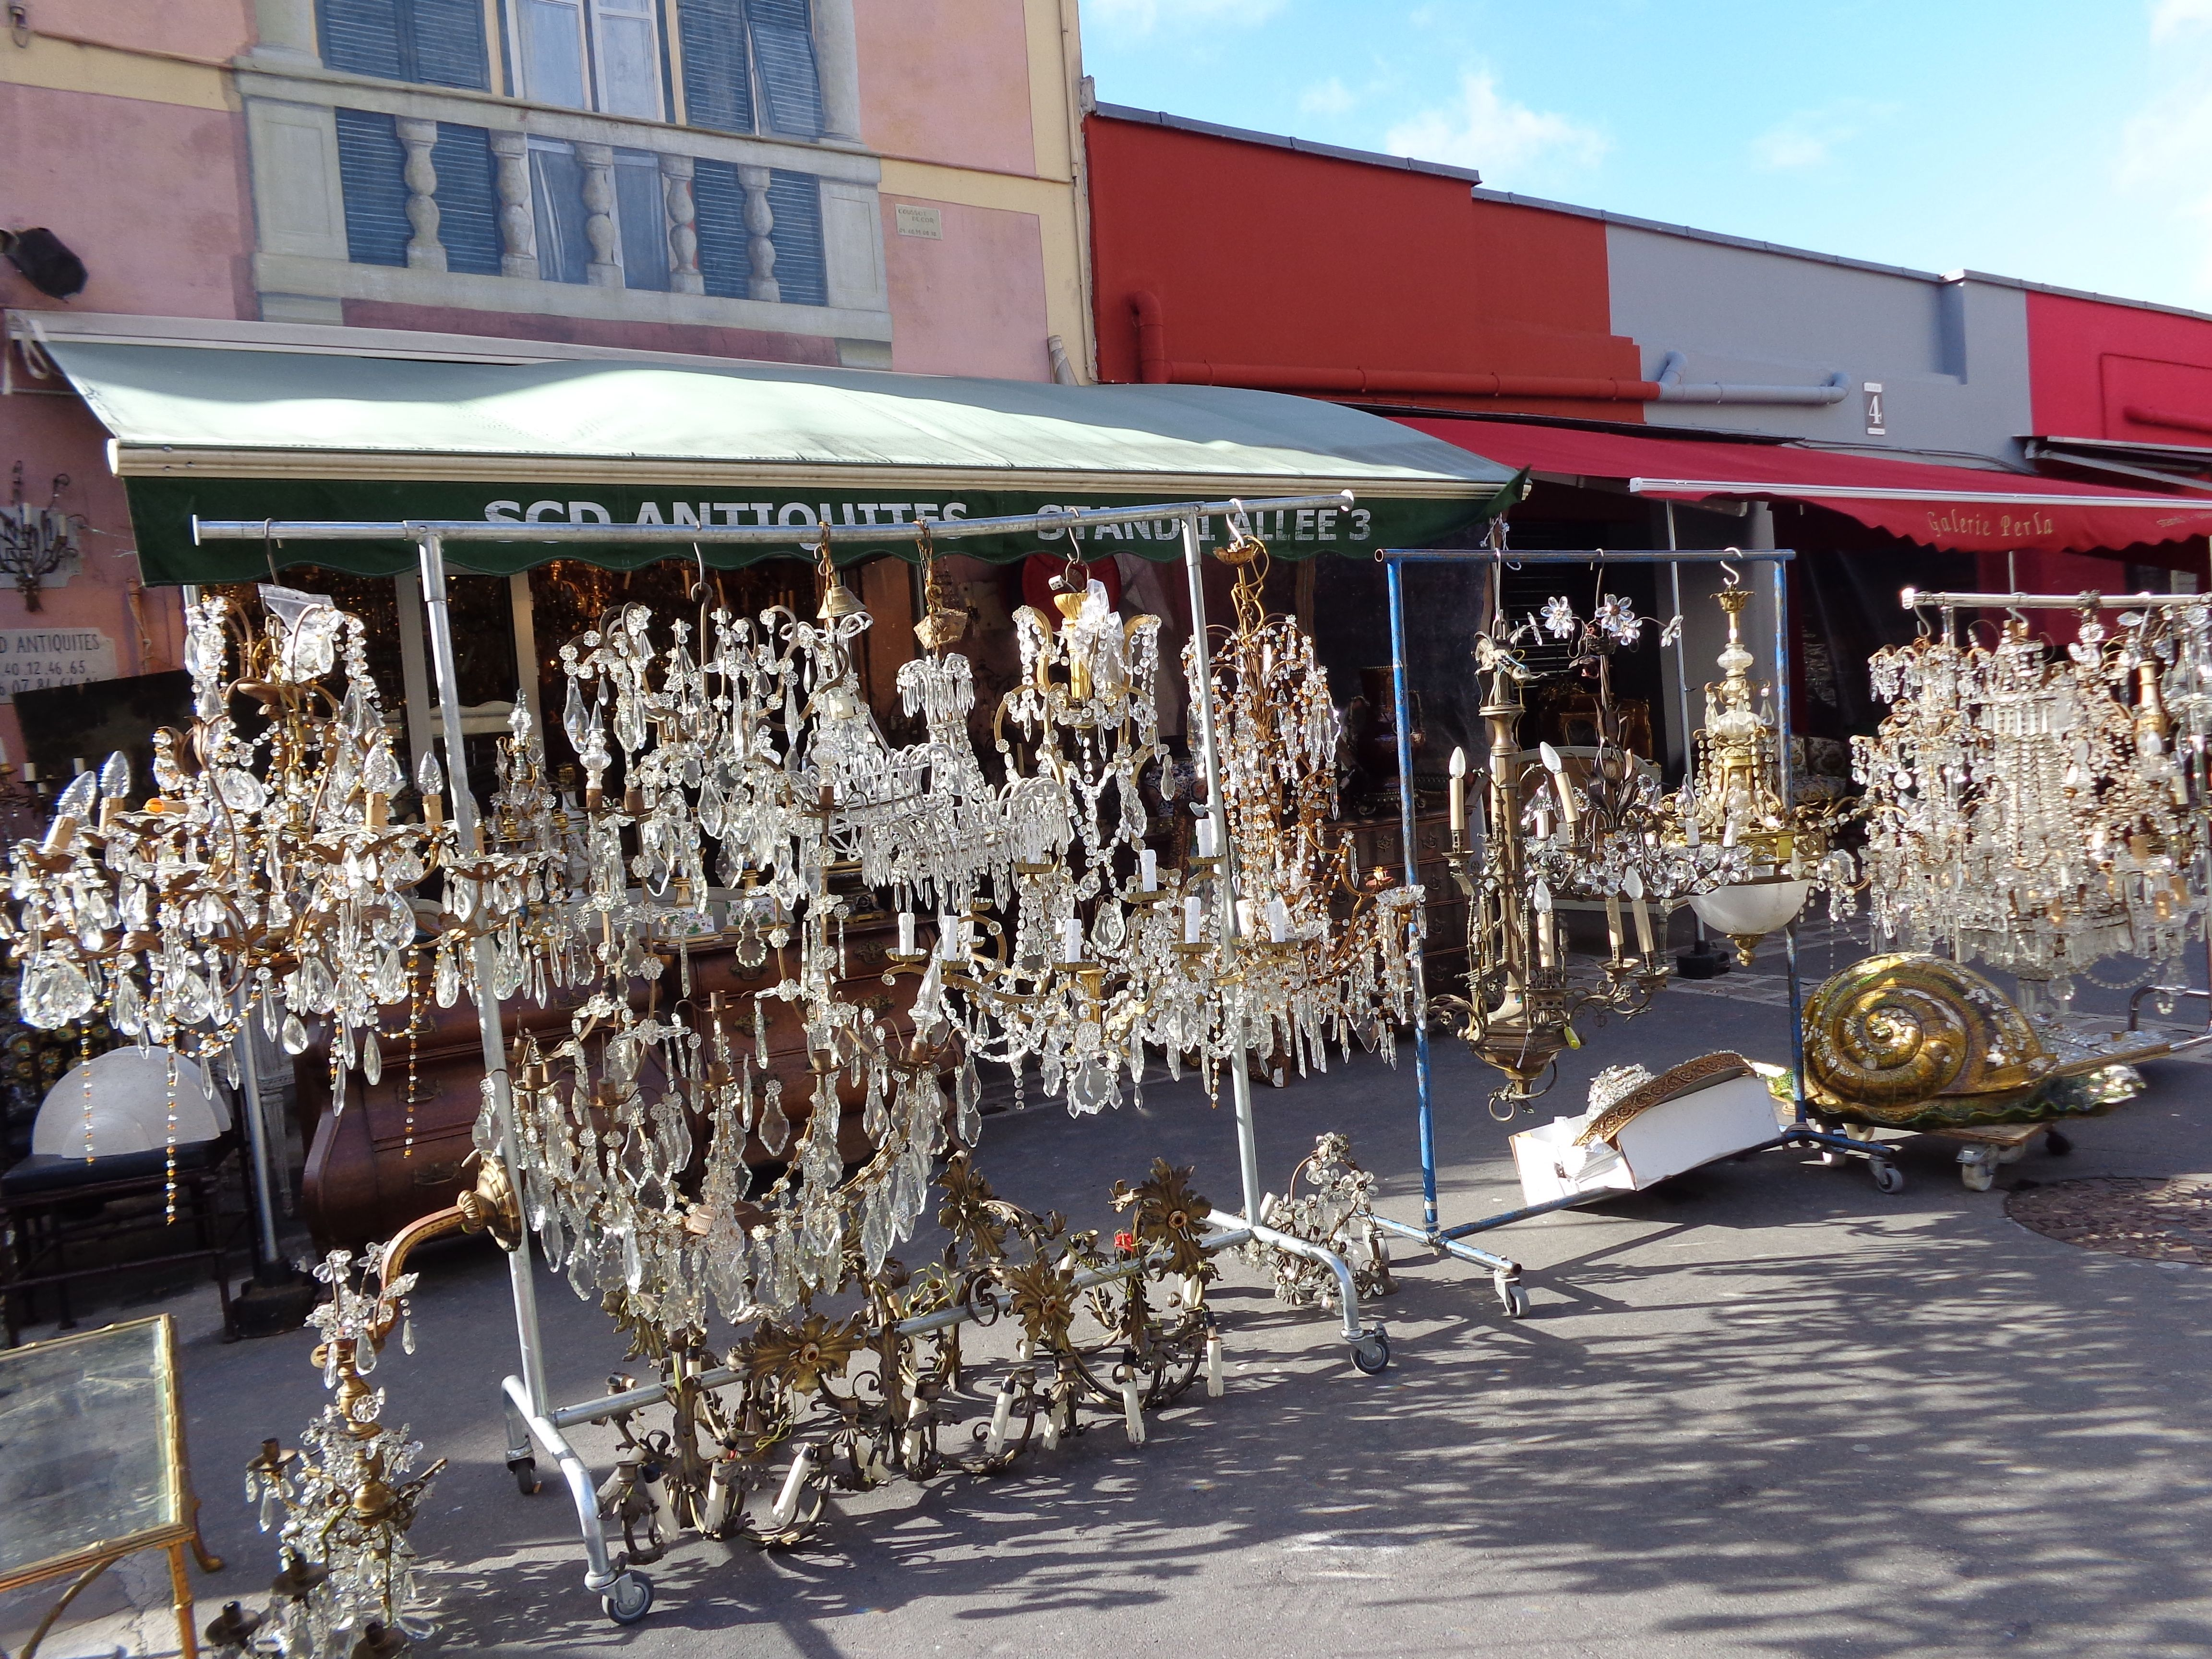 chandeliers in paris market, antiques, french, decorative, ornate.